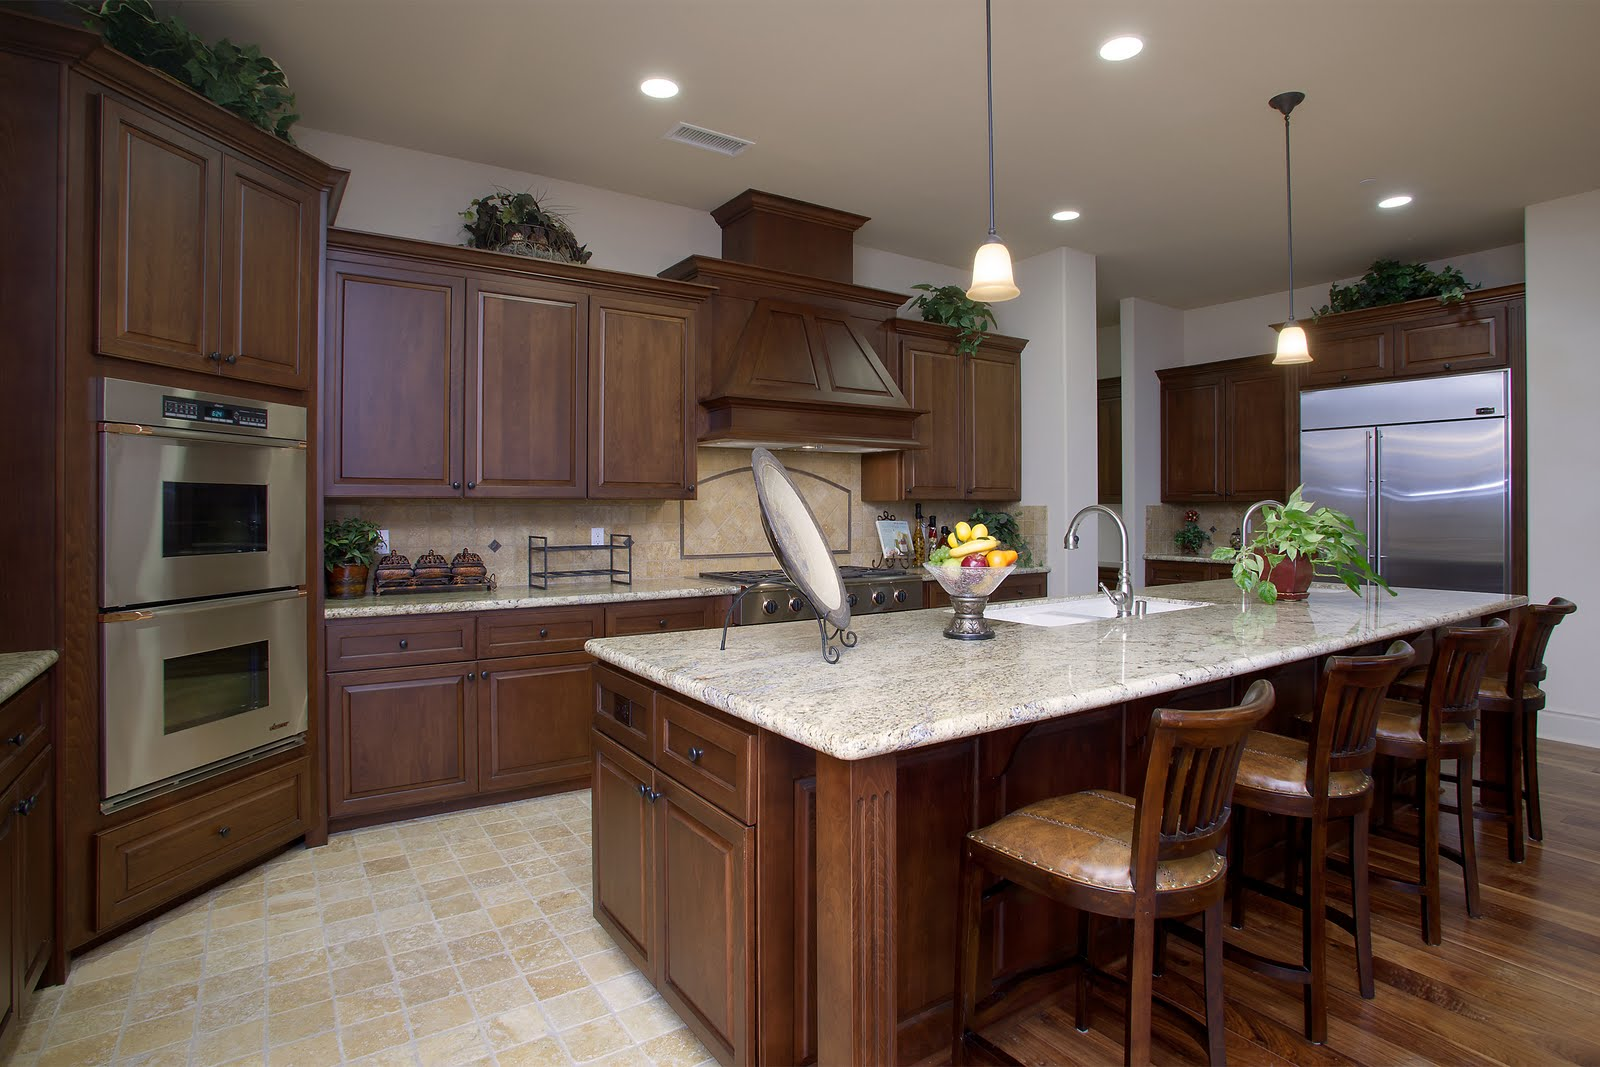 Model Home Kitchen Pleasing Kitchen Model Homes  Wallpaper Side Blog Inspiration Design